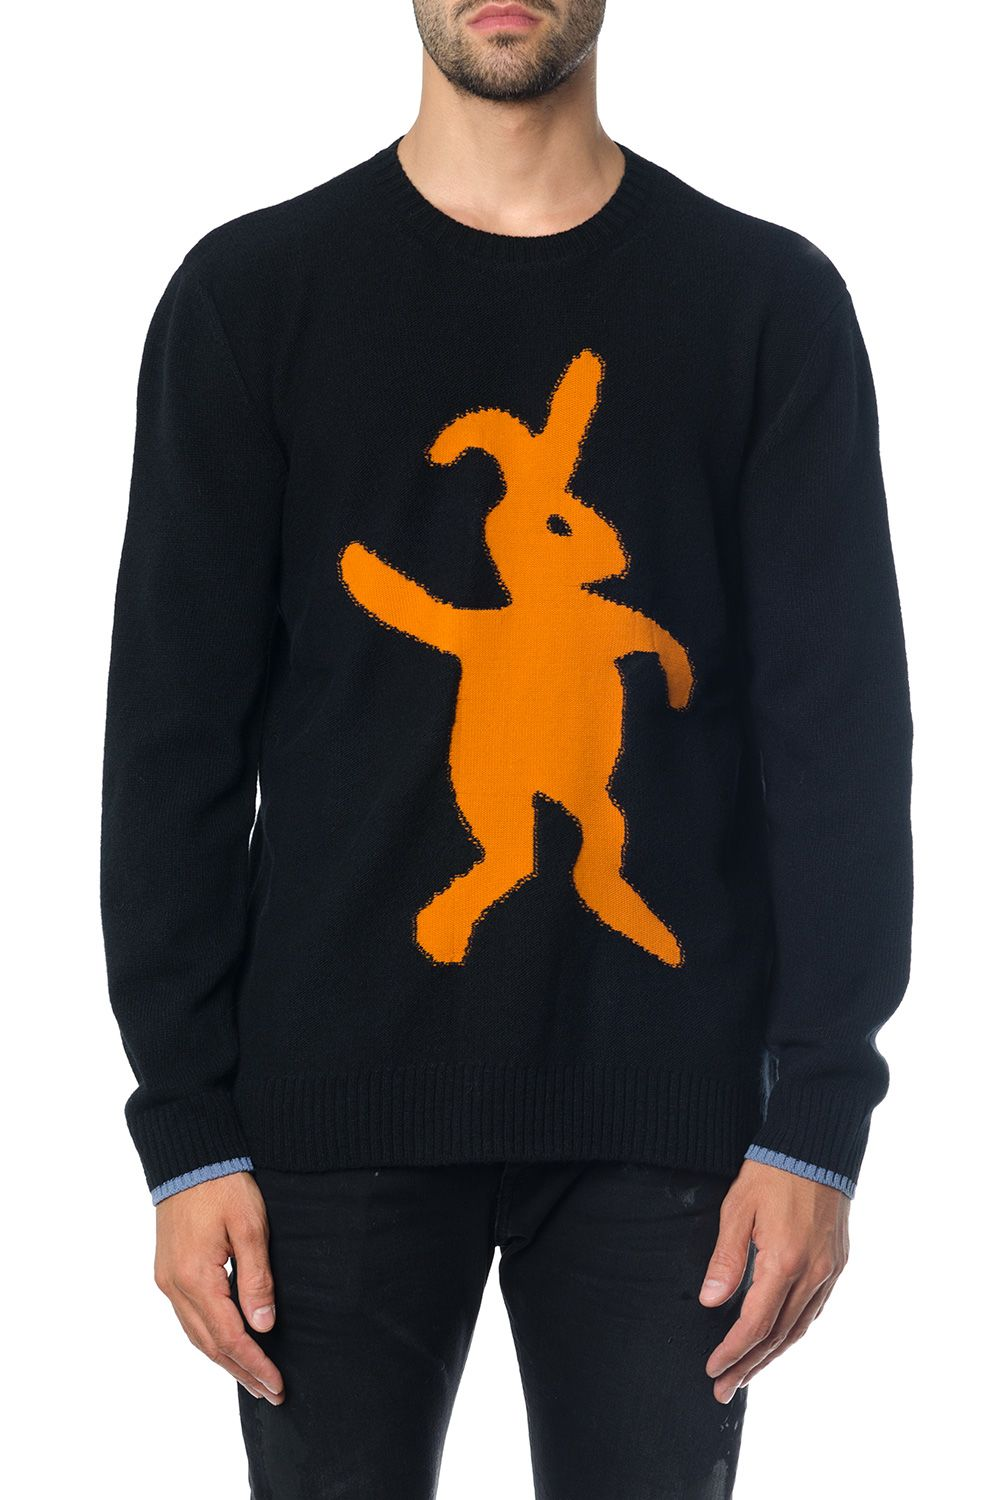 MARNI BLACK WOOL KNITWEAR WITH EMBROIDERED RABBIT